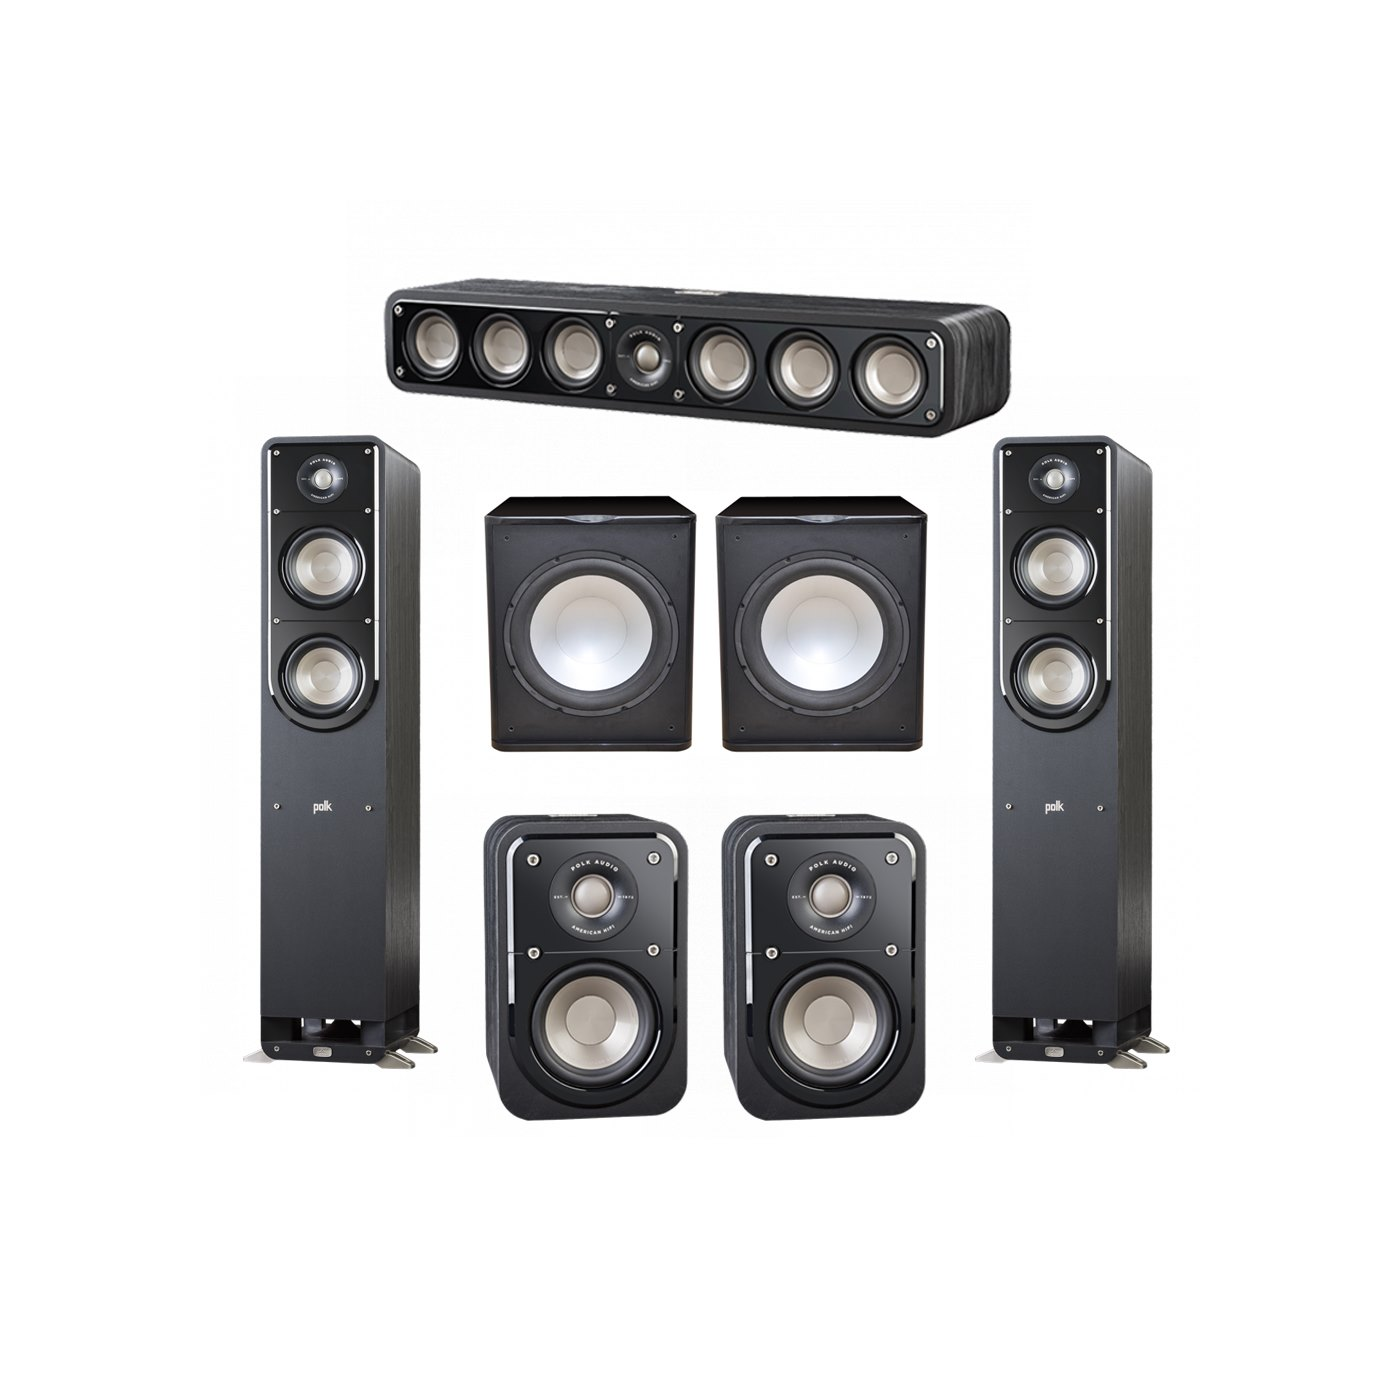 Polk Audio Signature 5.2 System with 2 S50 Tower Speaker, 1 Polk S35 Center Speaker, 2 Polk S10 Surround Speaker, 2 Premier Acoustic PA-150 Powered Subwoofer